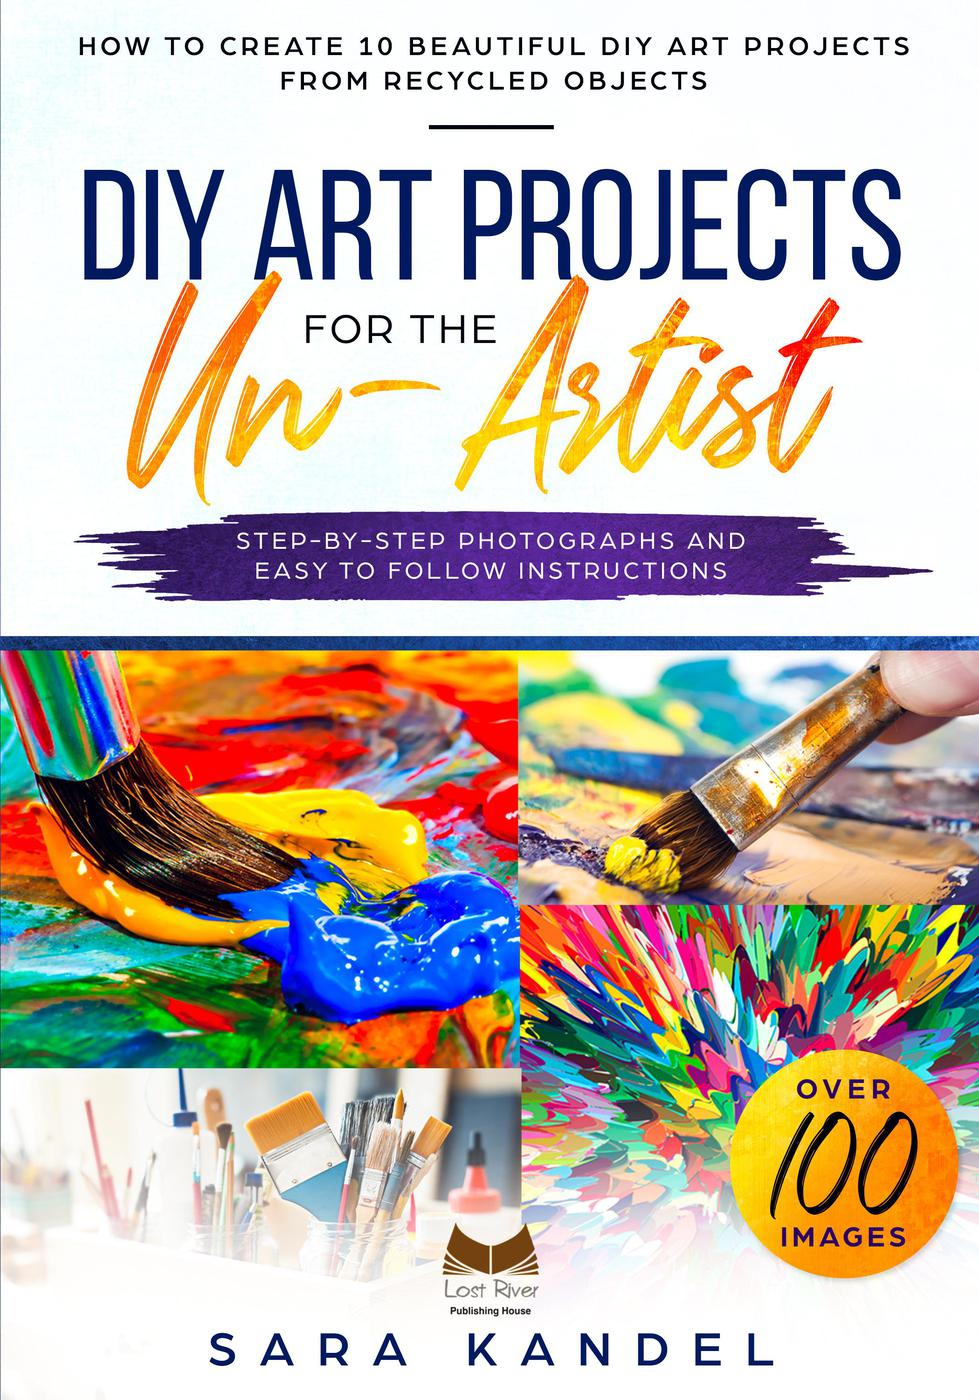 DIY Art Projects for the Un-Artist How to Create 10 Beautiful DIY Art Projects from Recycled Objects Step-by-Step Photographs and Easy to Follow Instructions